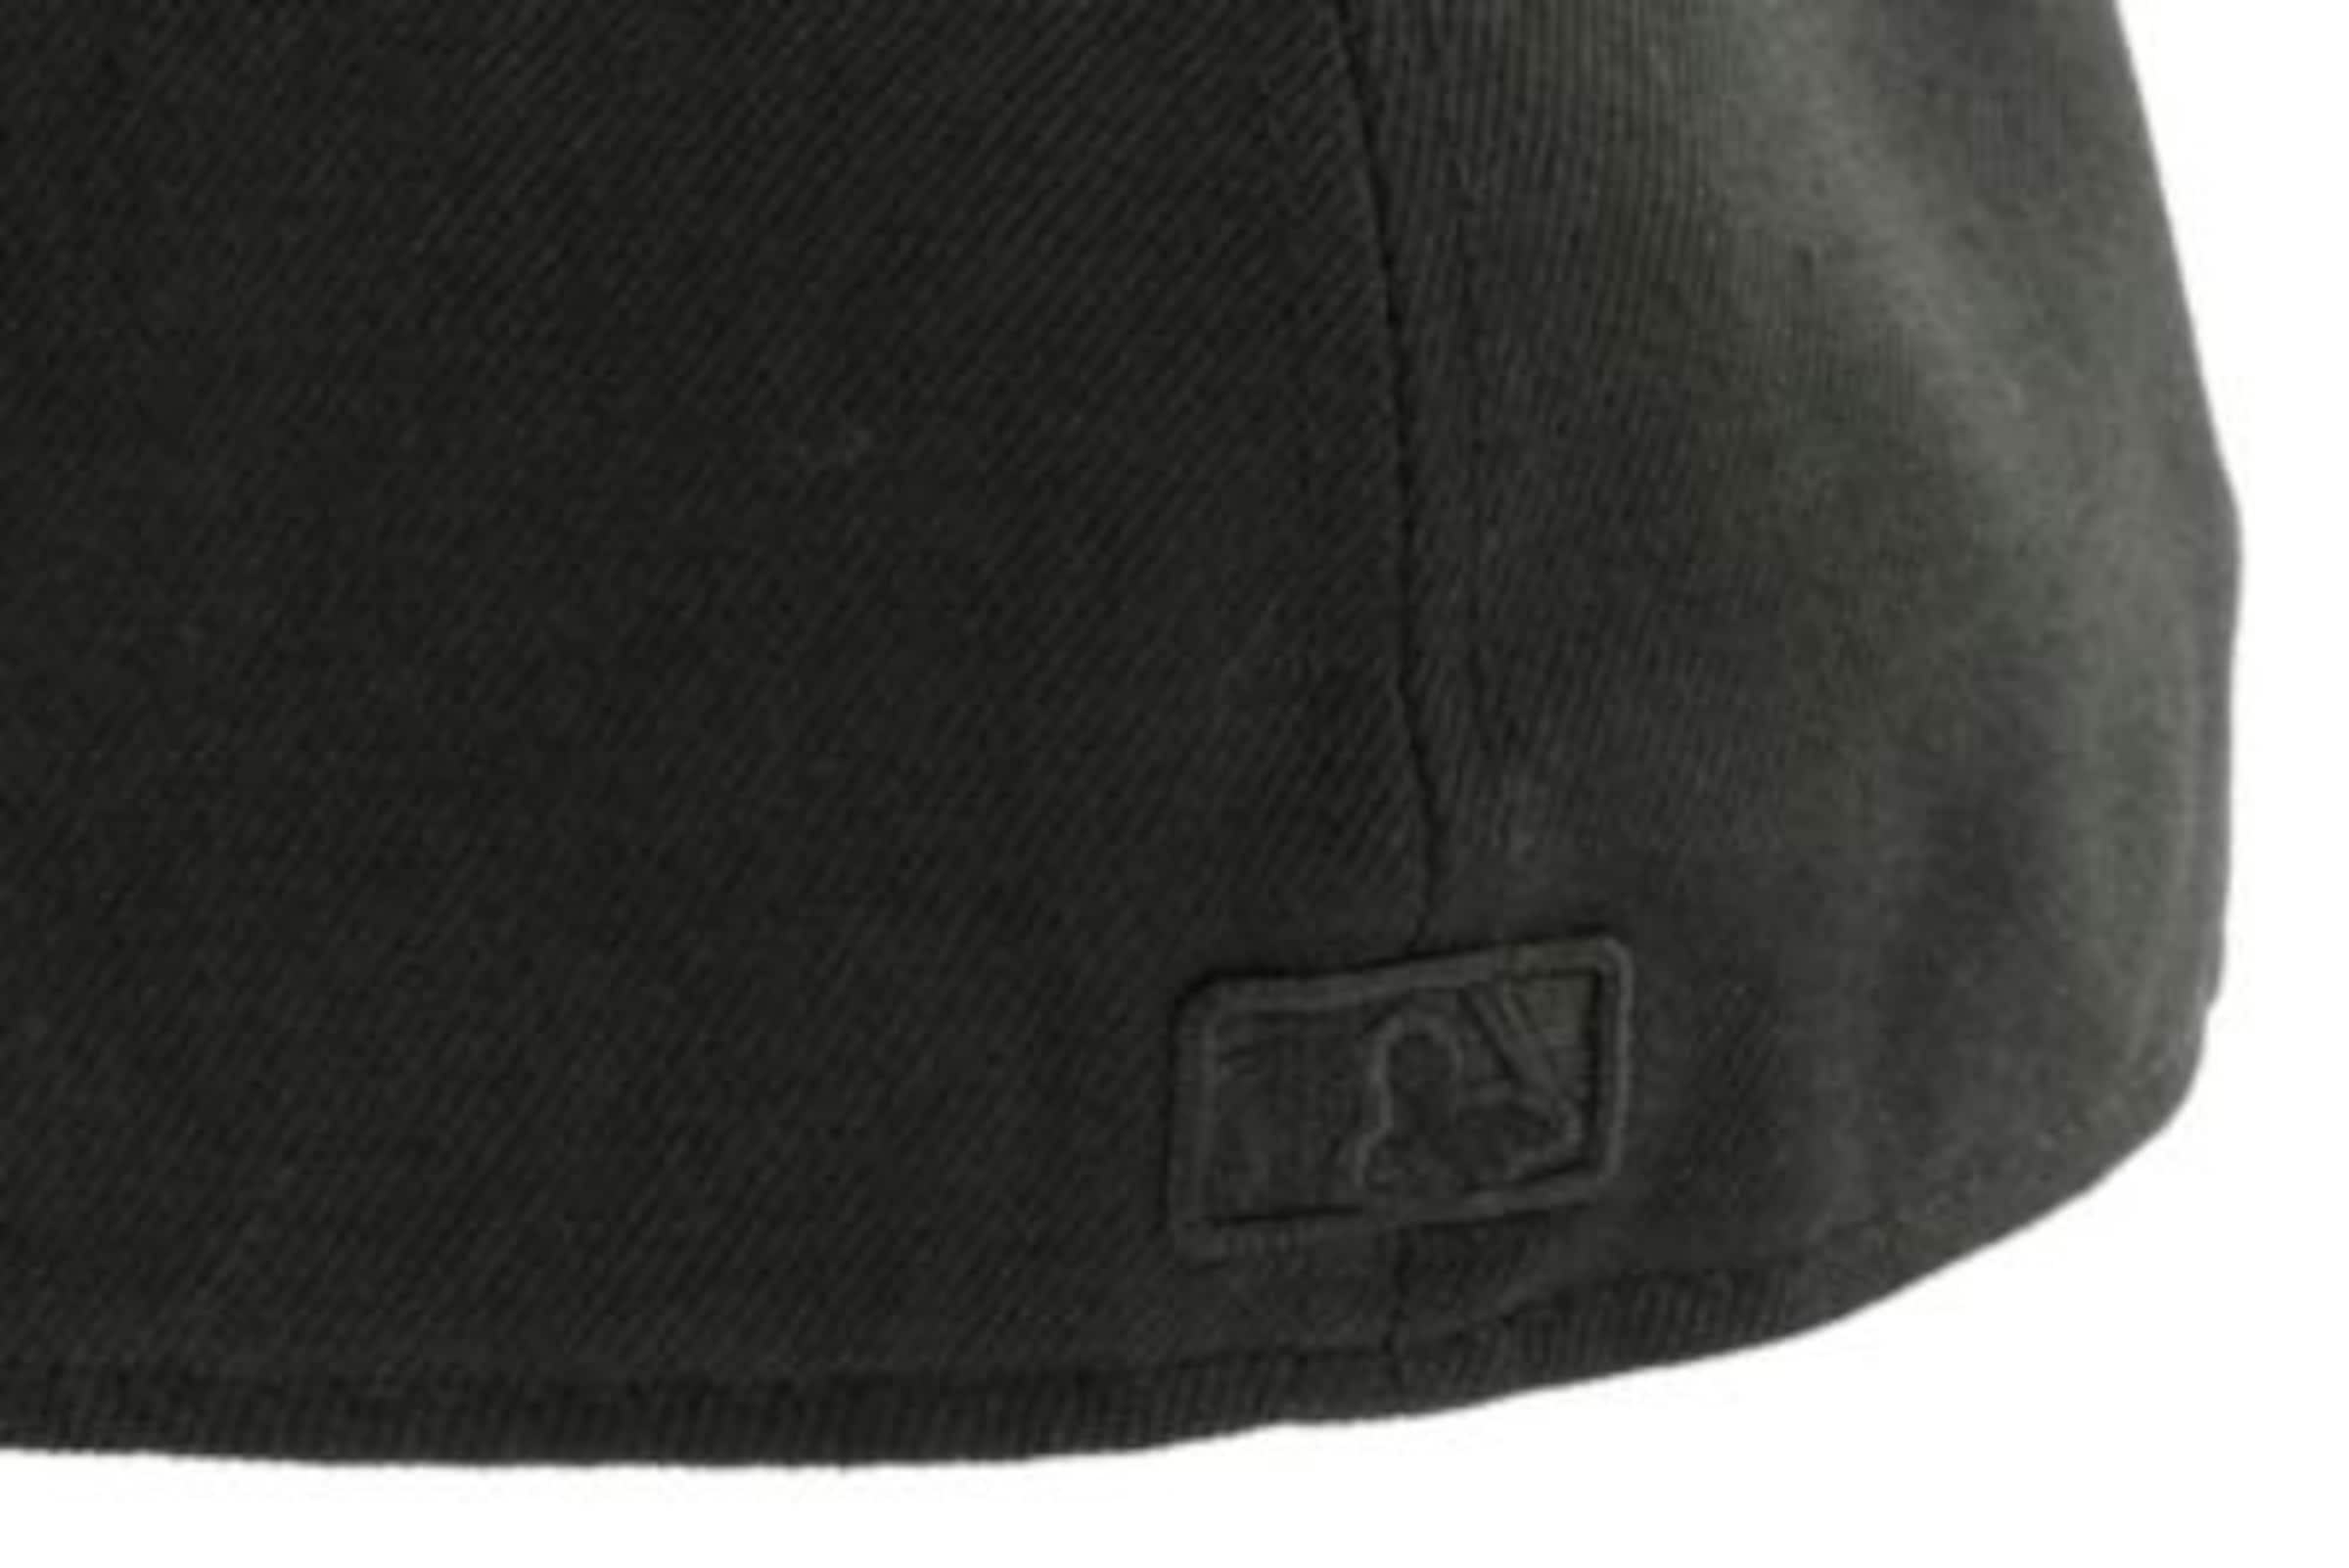 Komfortabel Günstiger Preis 100% Original Günstig Online NEW ERA Cap '59FIFTY Black on Black New York Yankees' Freies Verschiffen Neue Stile Schnelle Lieferung Echt SGLtz